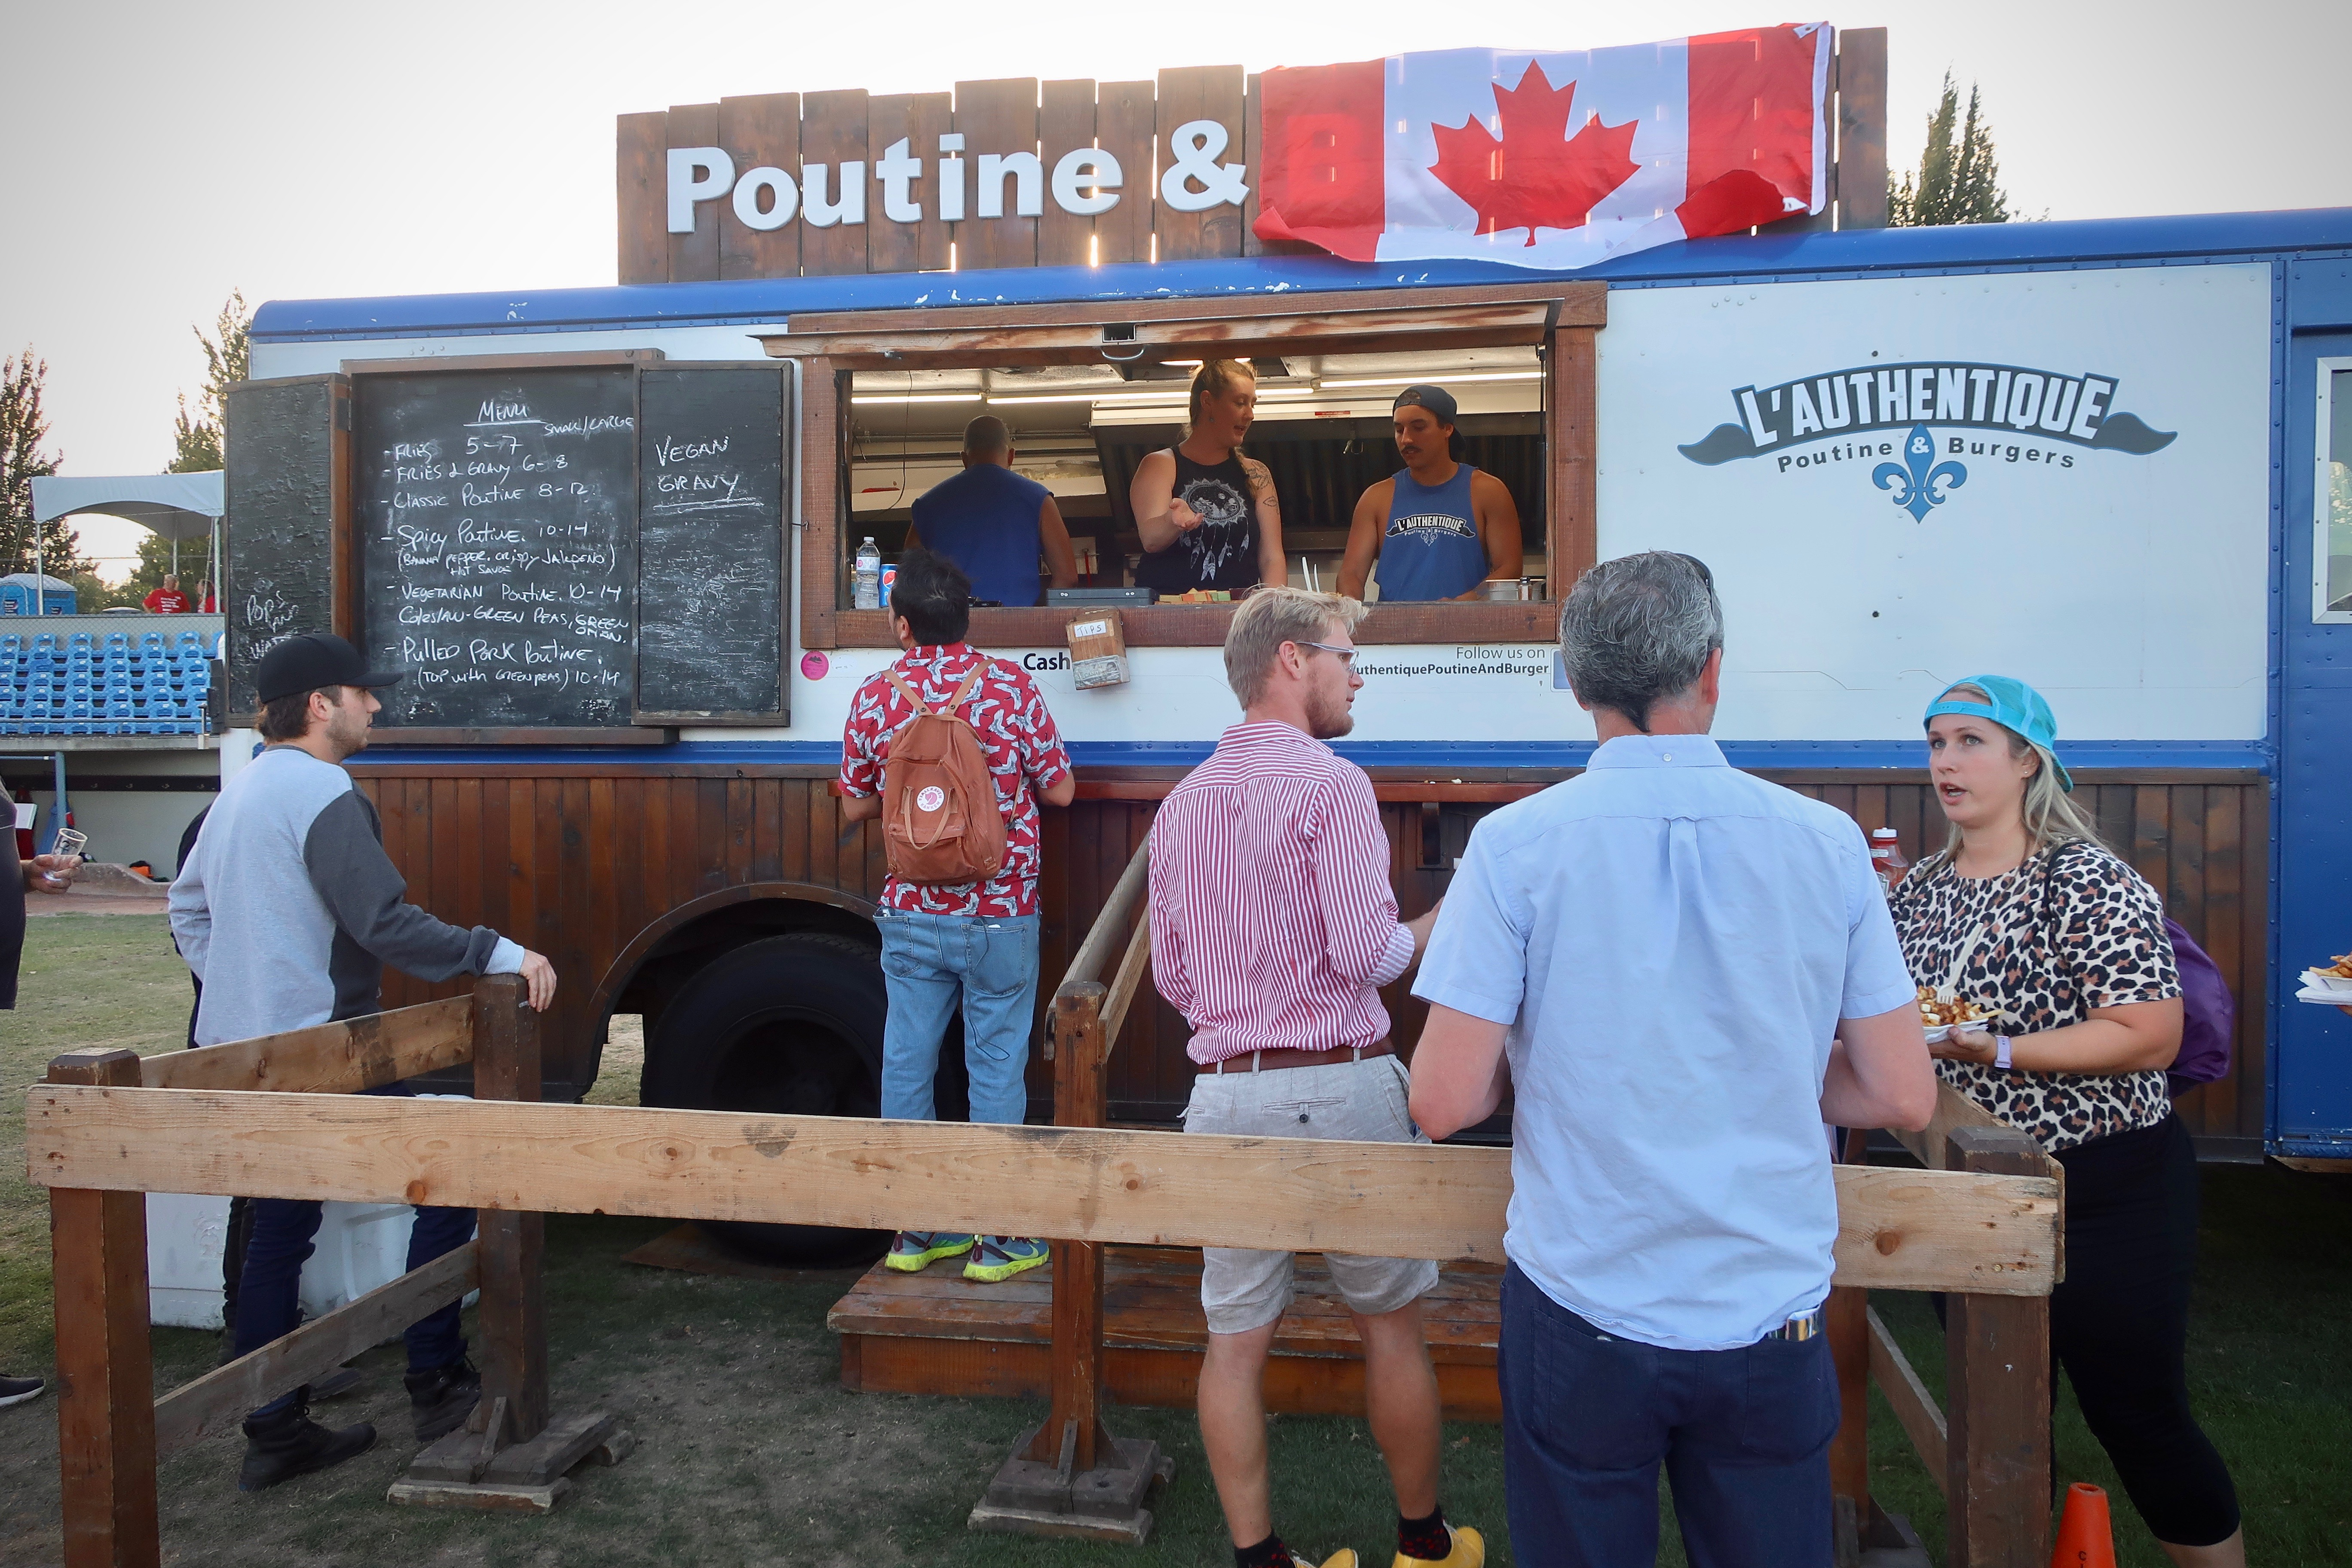 Of course there was a poutine truck at the 2019 Great Canadian Beer Festival.